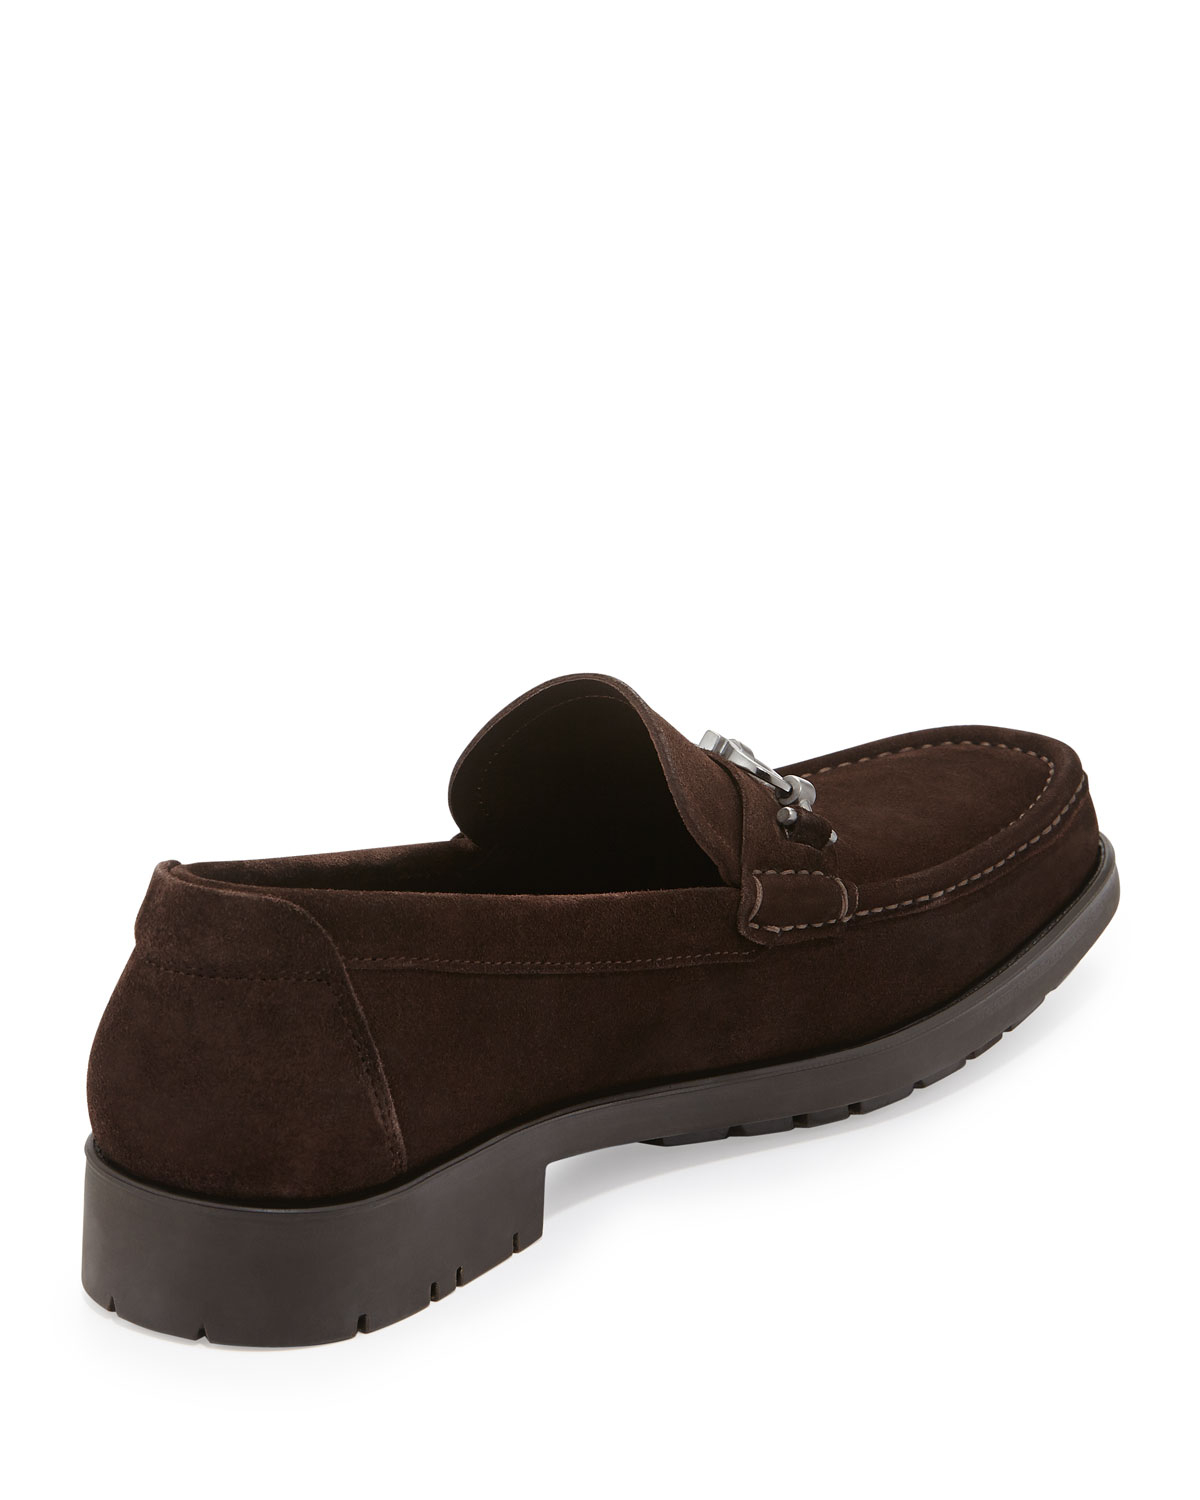 Ferragamo Neiman Marcus Ferragamo Master Suede Gancini Loafer Brown For Men Save